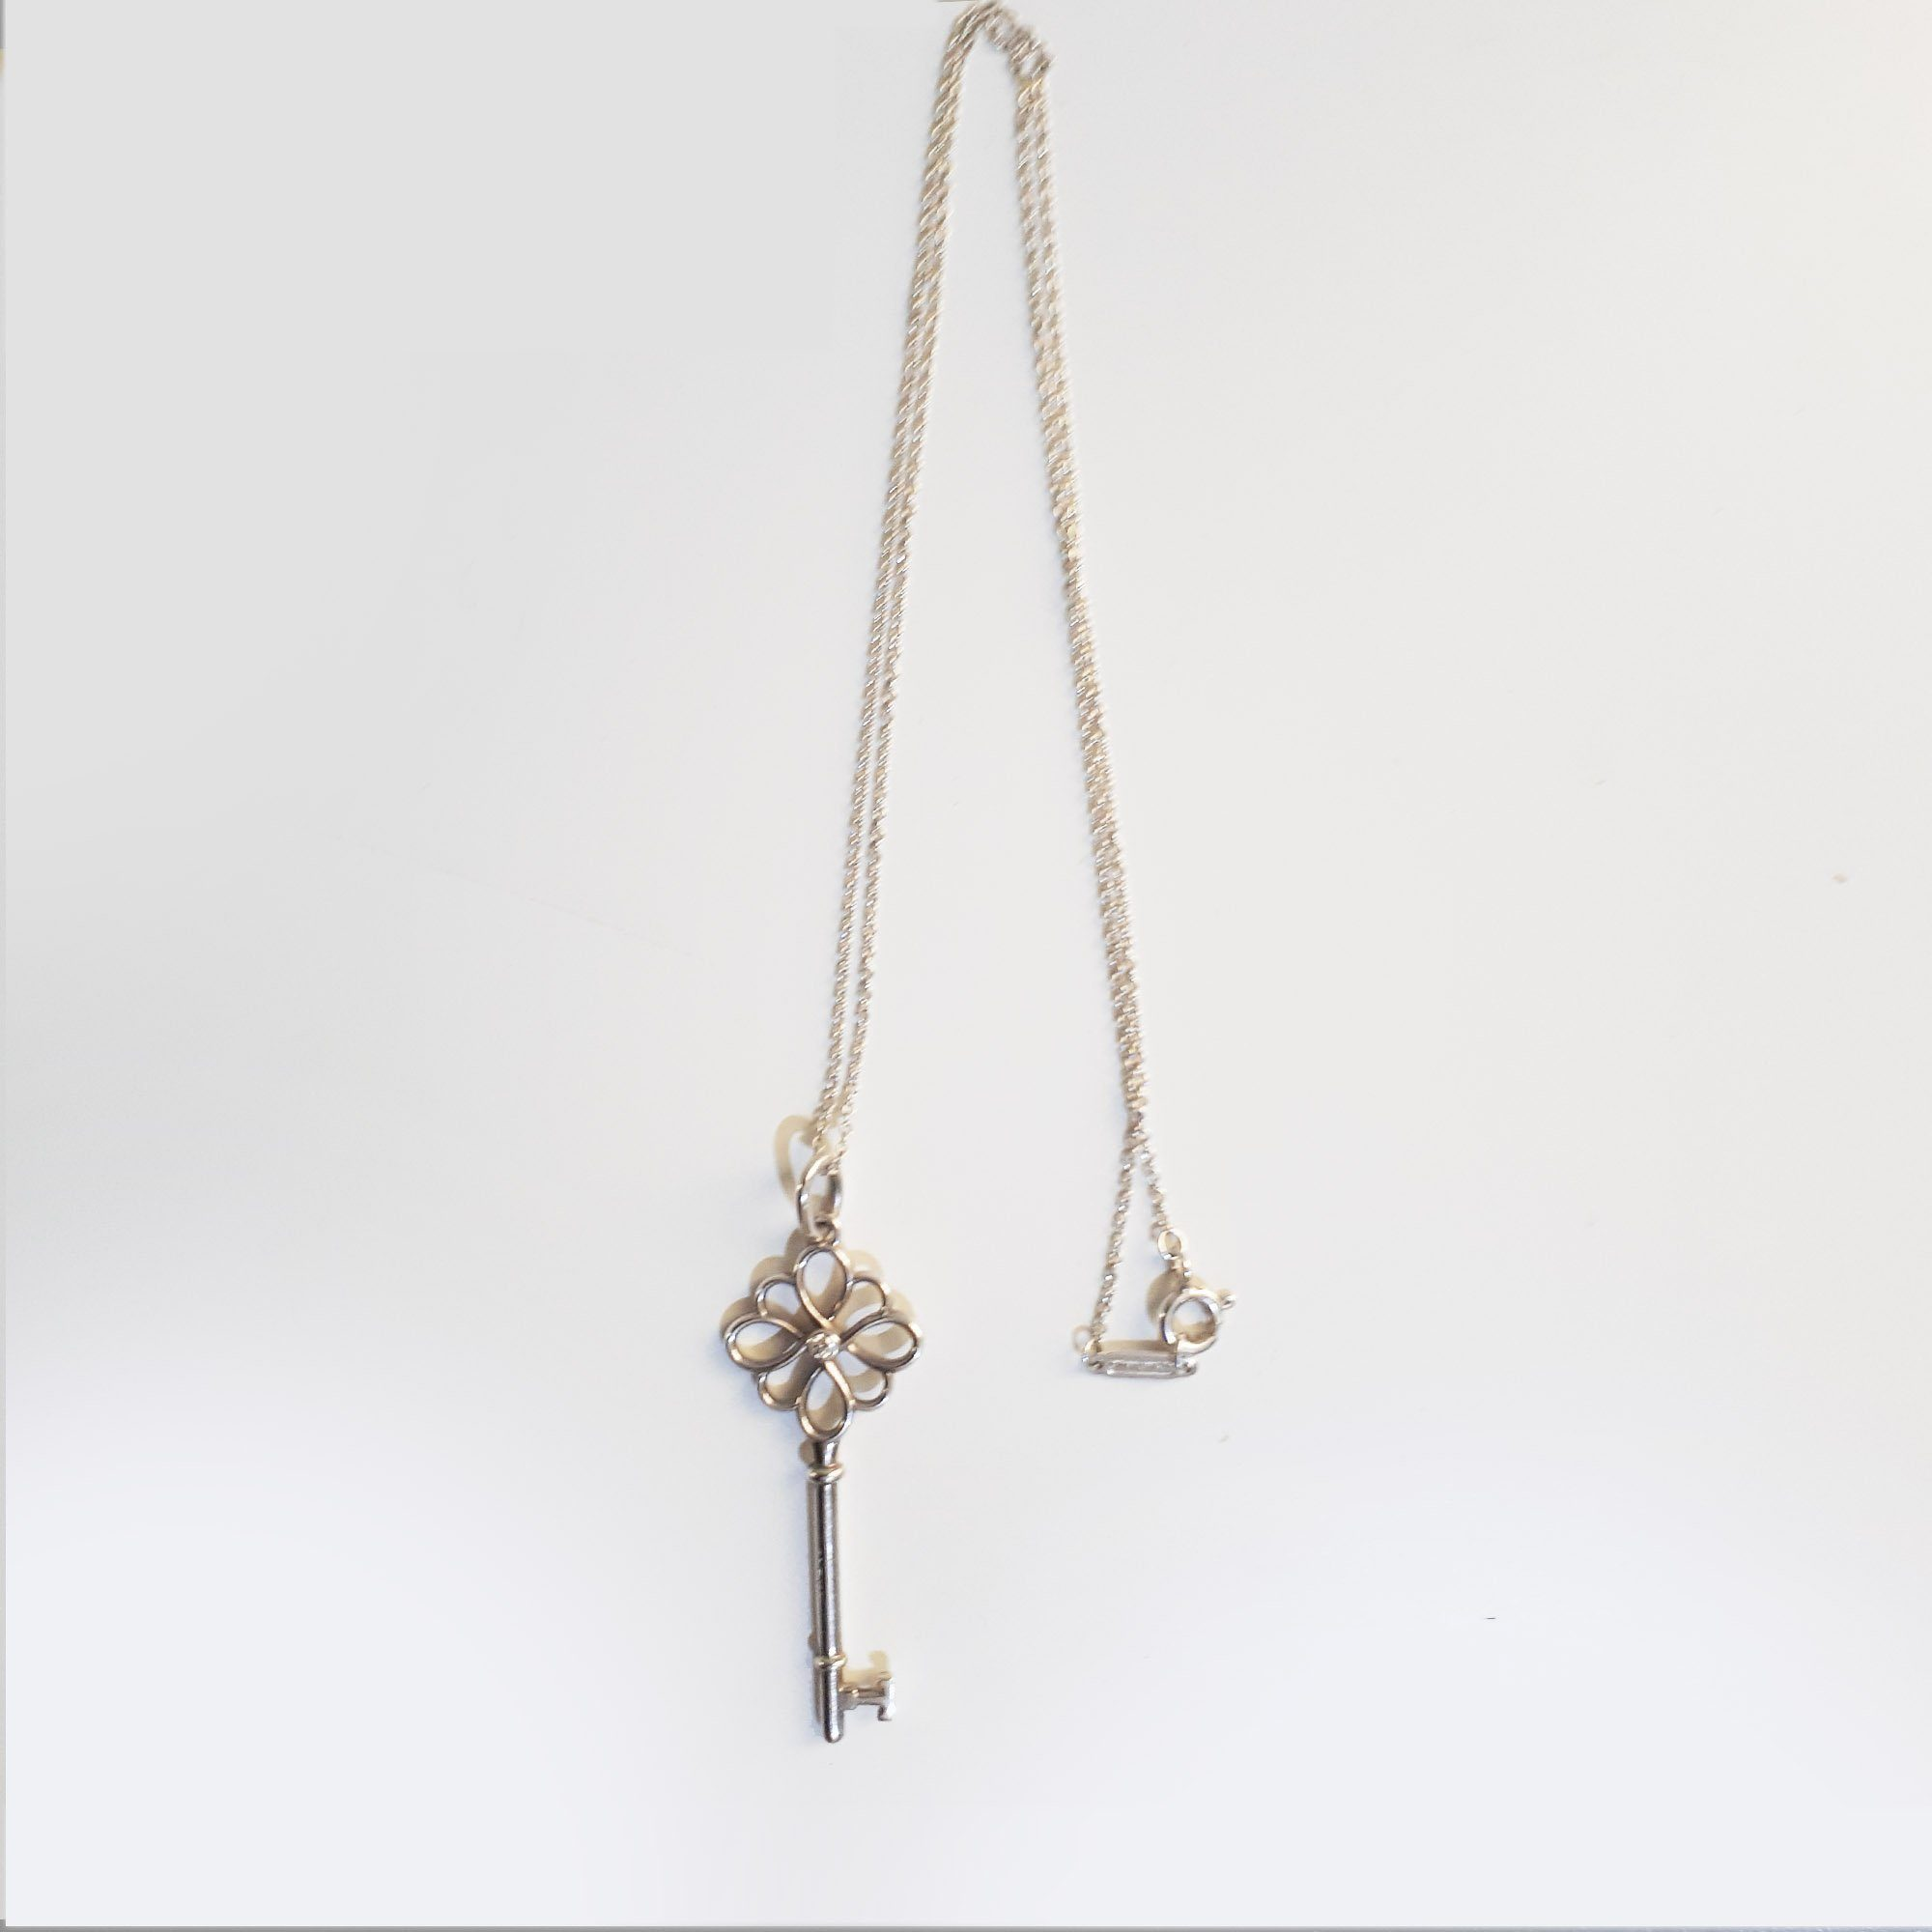 Tiffany & Co. Open Knot Key Pendant And Chain